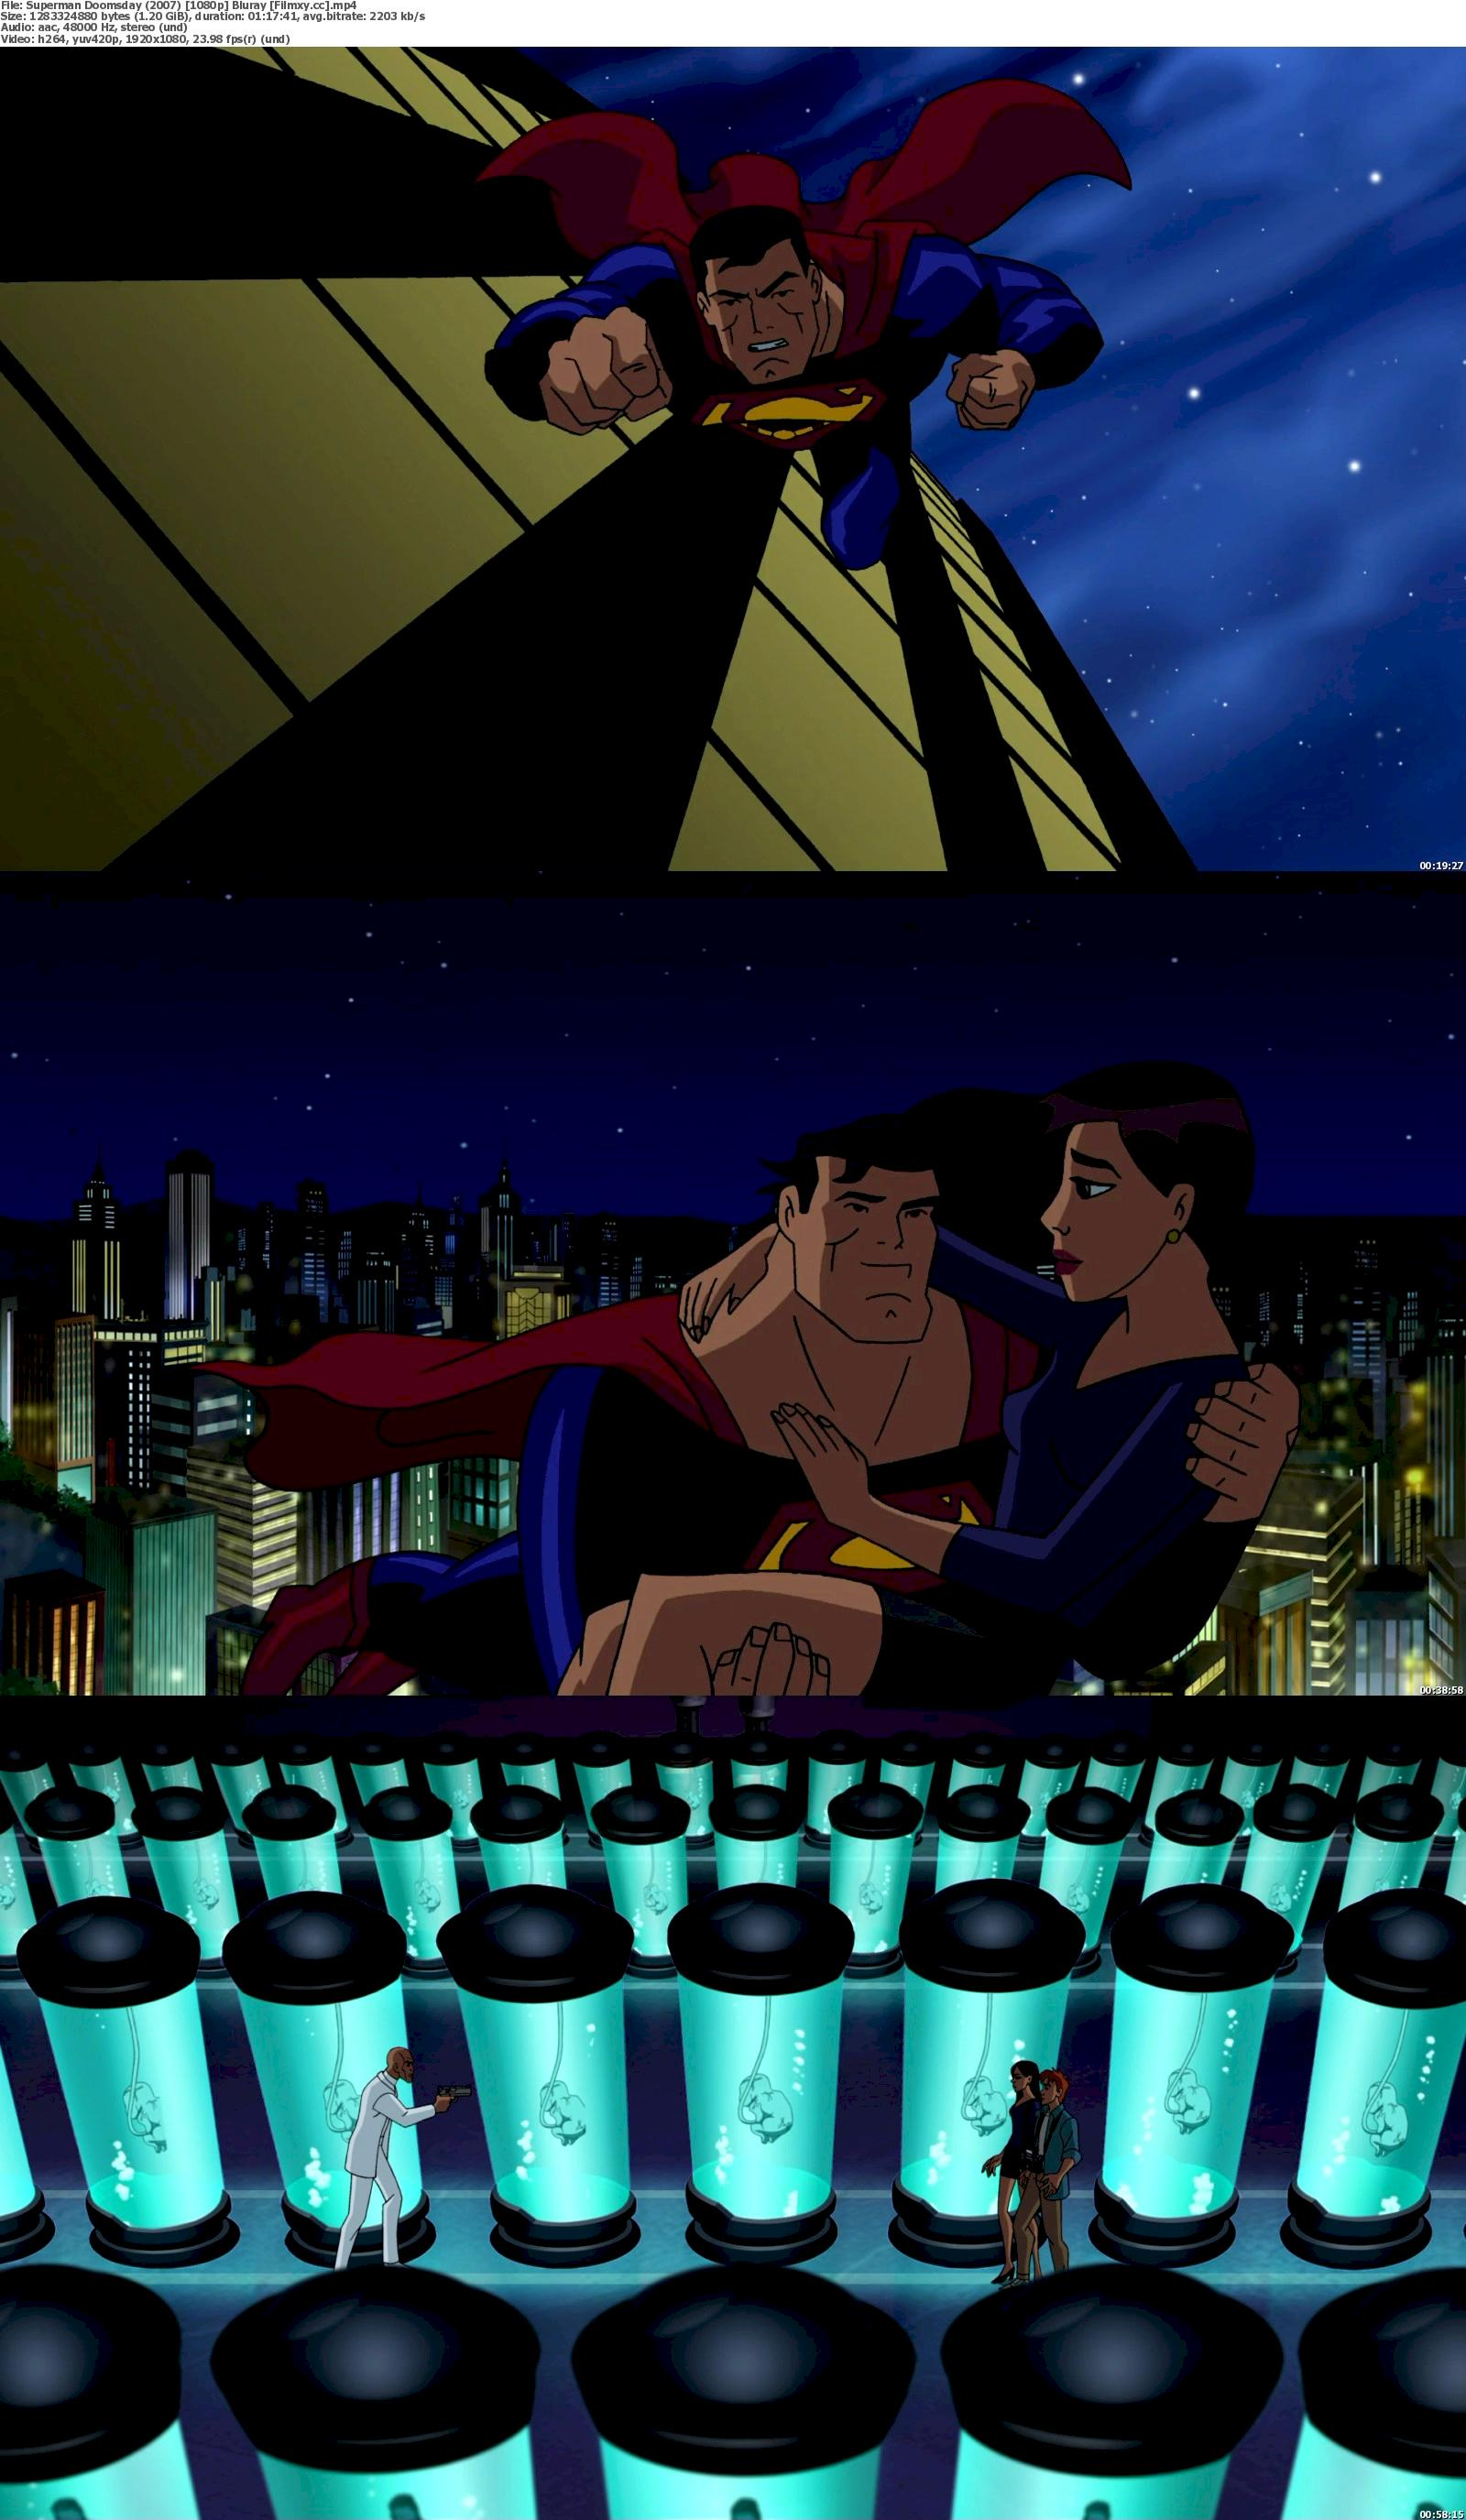 Superman/Doomsday (2007) 720p & 1080p Bluray Free Download 1080p Screenshot